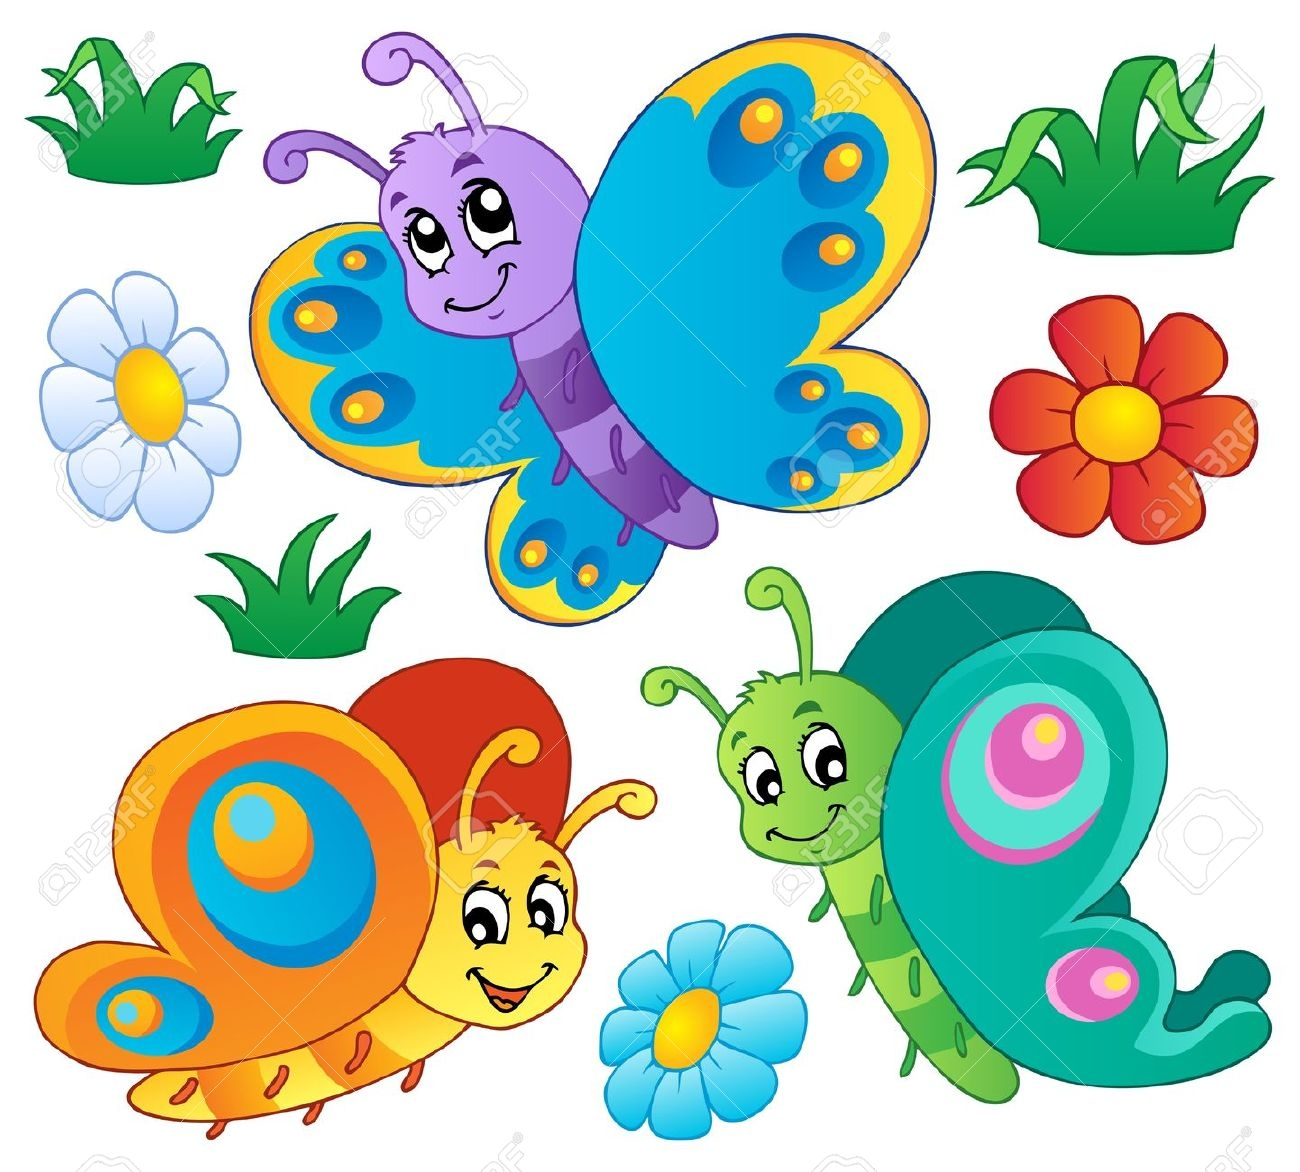 Free Cartoon Butterfly Cliparts, Download Free Clip Art, Free Clip.